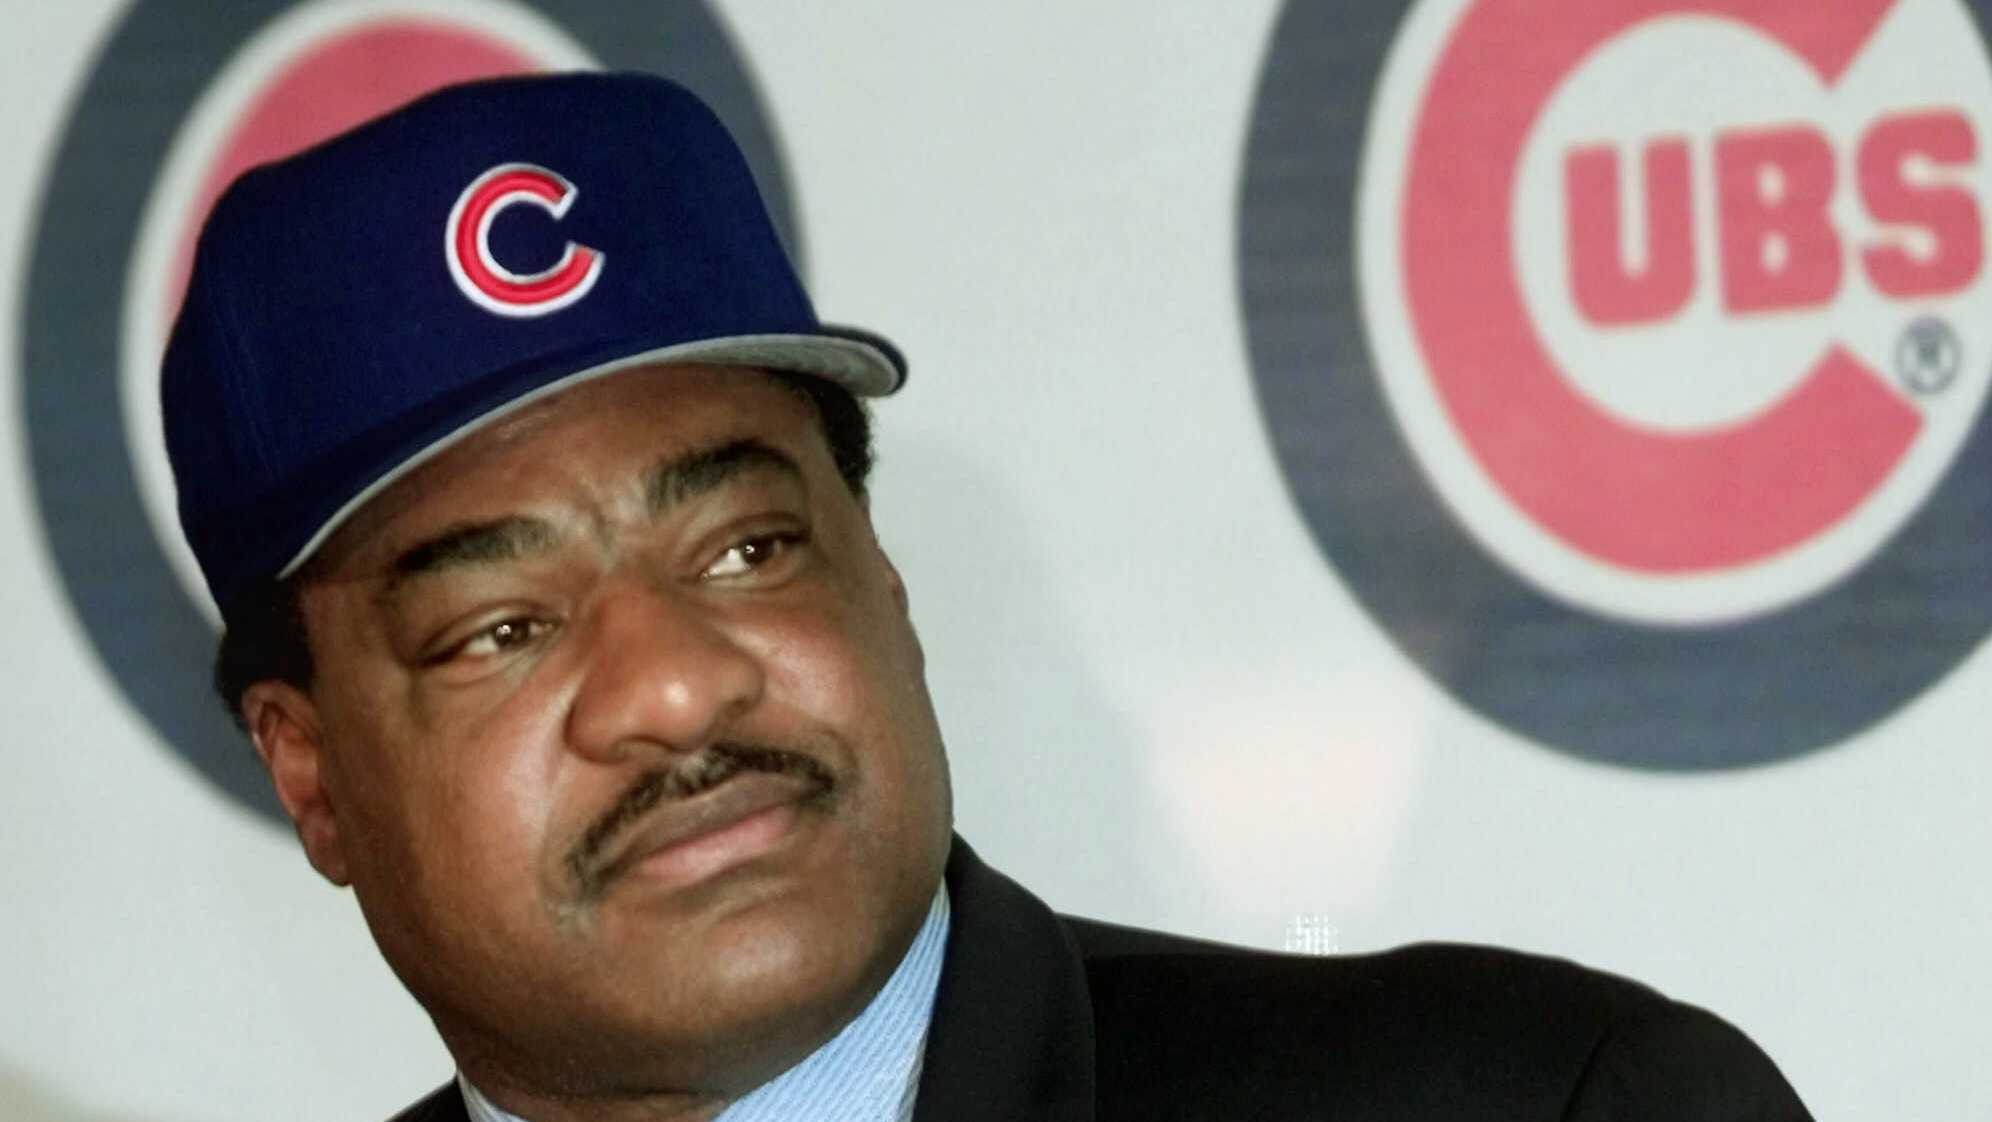 Don Baylor listens to reporters after being named the new Chicago Cubs manager Monday, Nov. 1, 1999, during a news conference at Wrigley Field in Chicago.